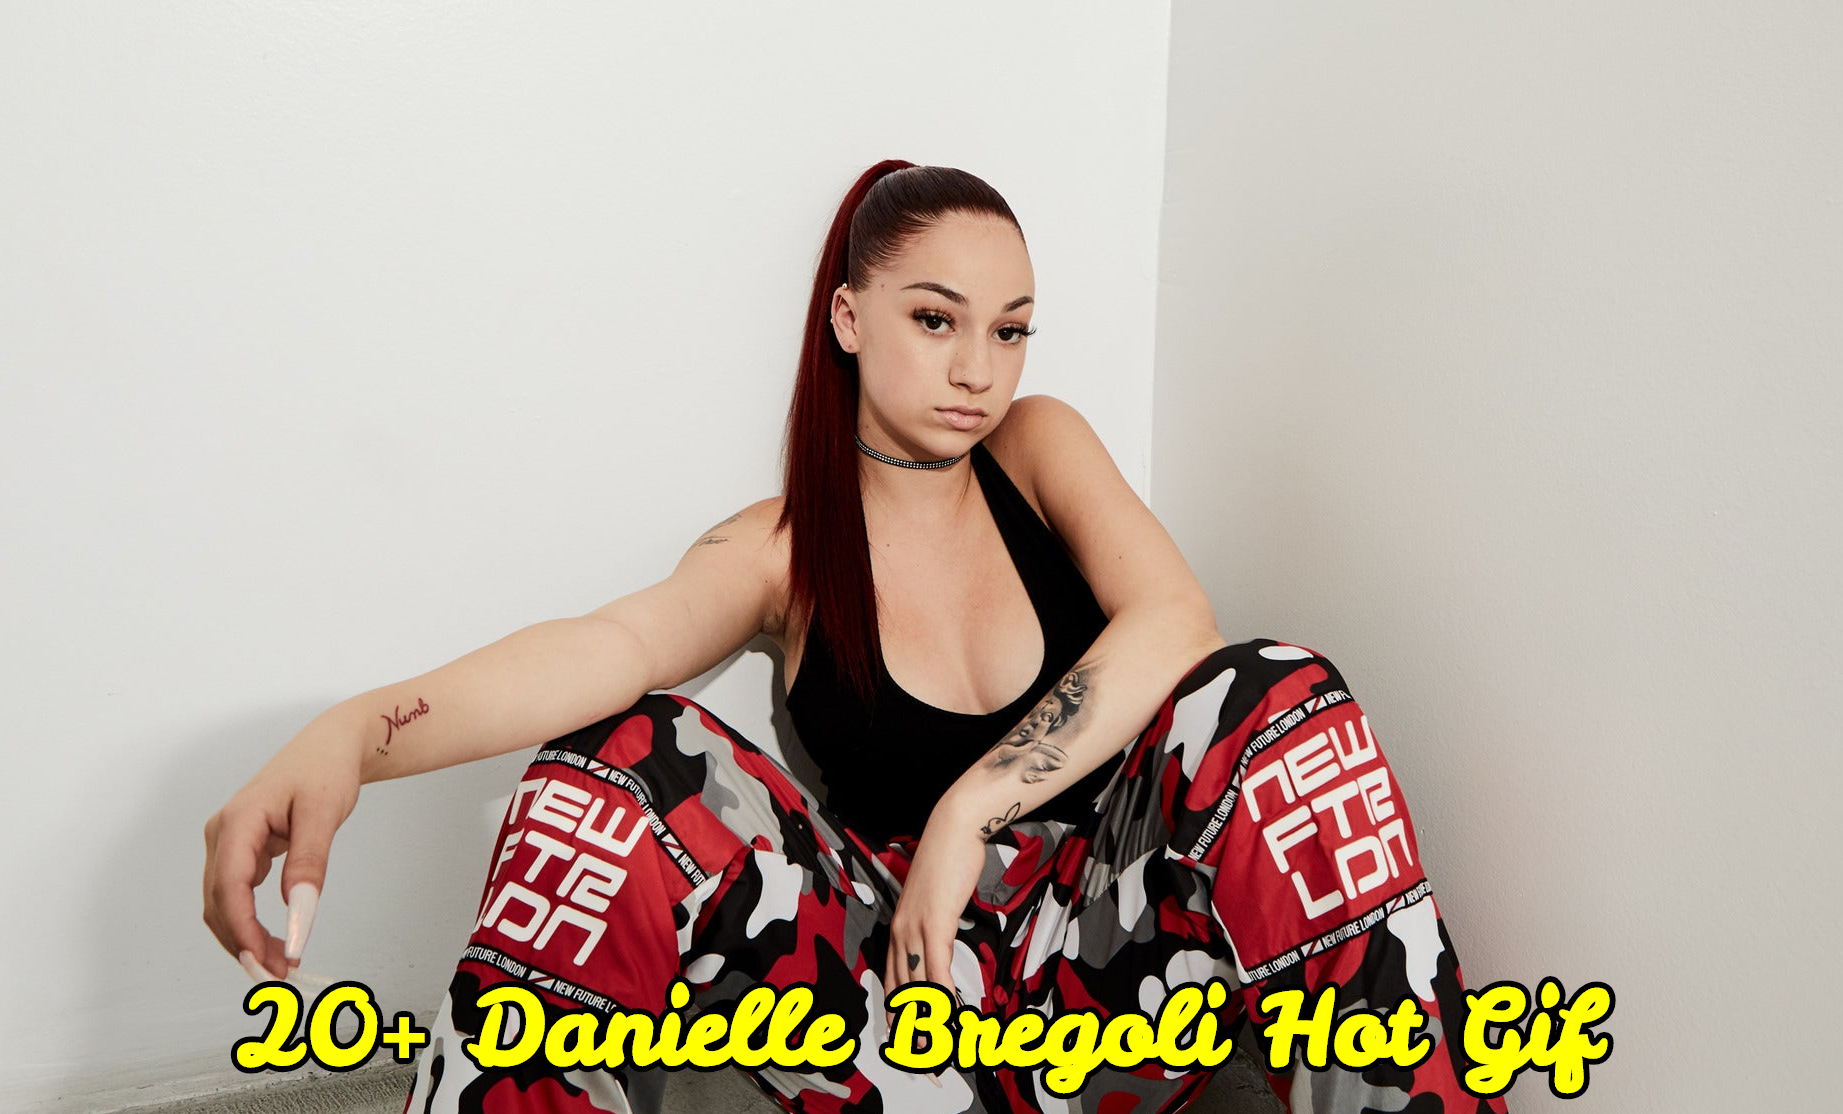 23 Hot Gif Of Danielle Bregoli Which Are Inconceivably Beguiling